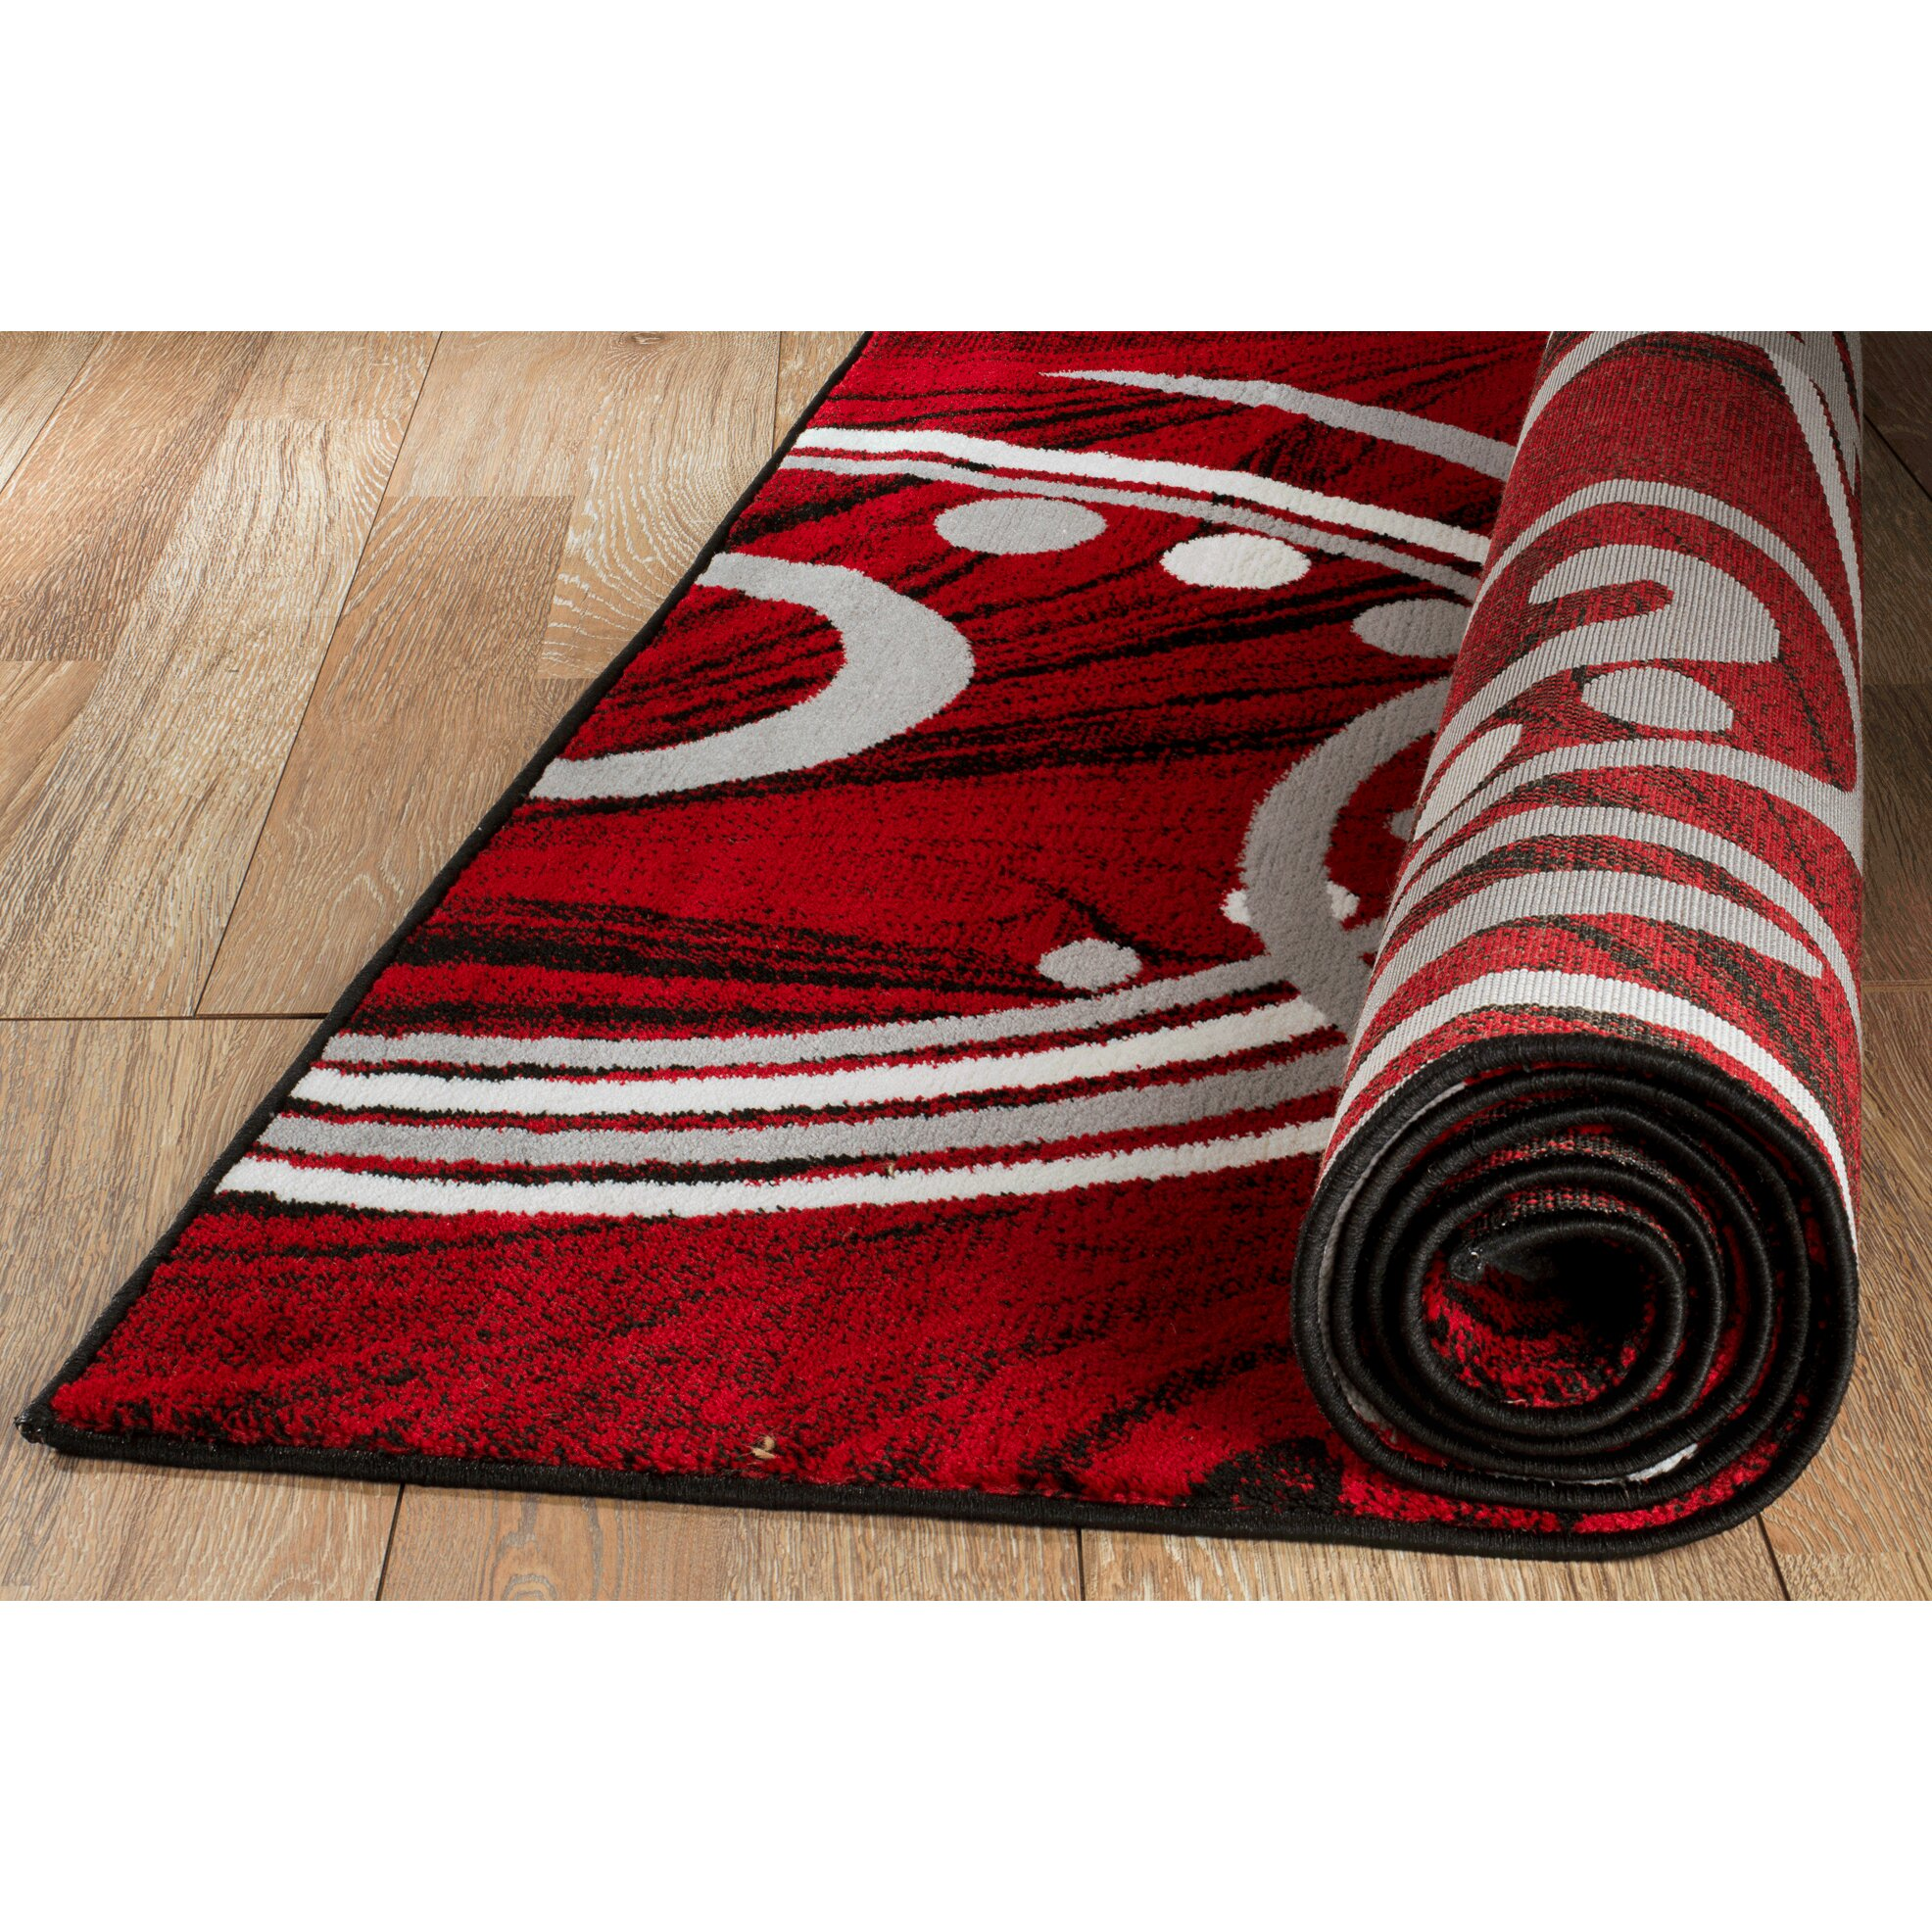 Rug And Decor Inc. Summit Elite Red Area Rug & Reviews